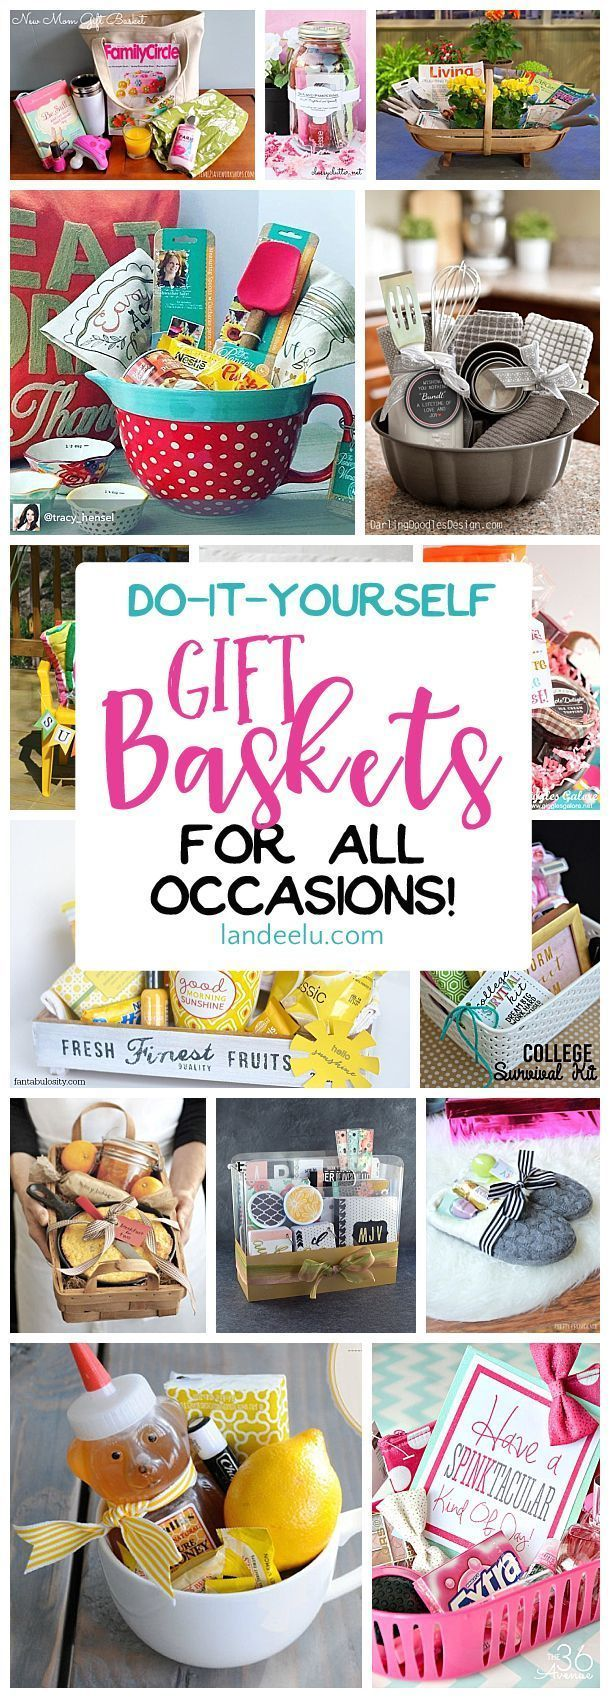 Do it Yourself Gift Basket Ideas for All Occasions - landeelu.com